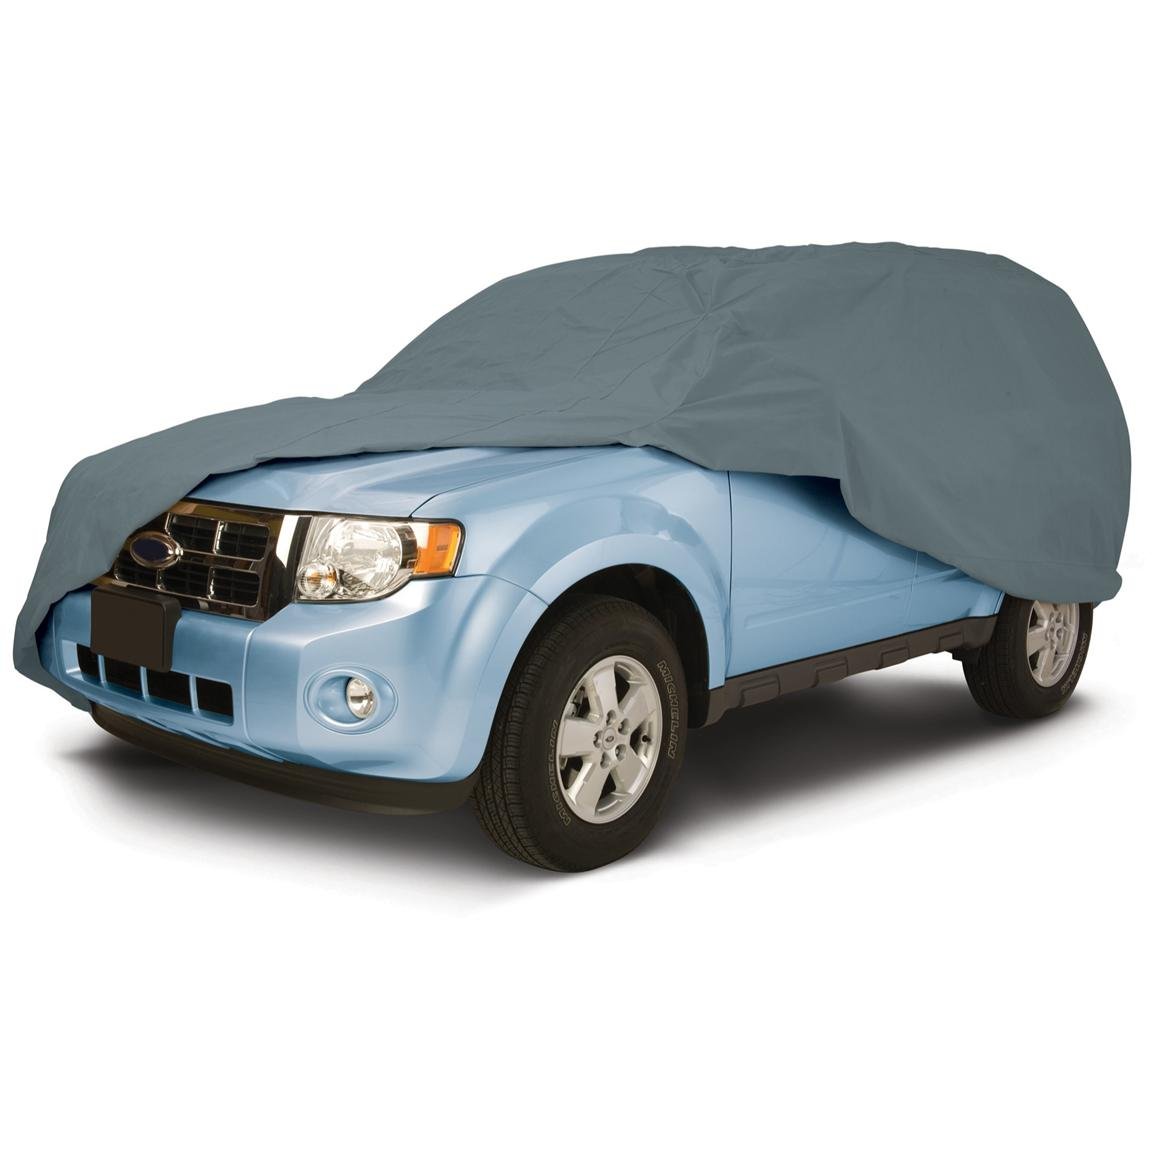 Classic Accessories OverDrive PolyPRO 1 Car Cover, SUV / Pickup